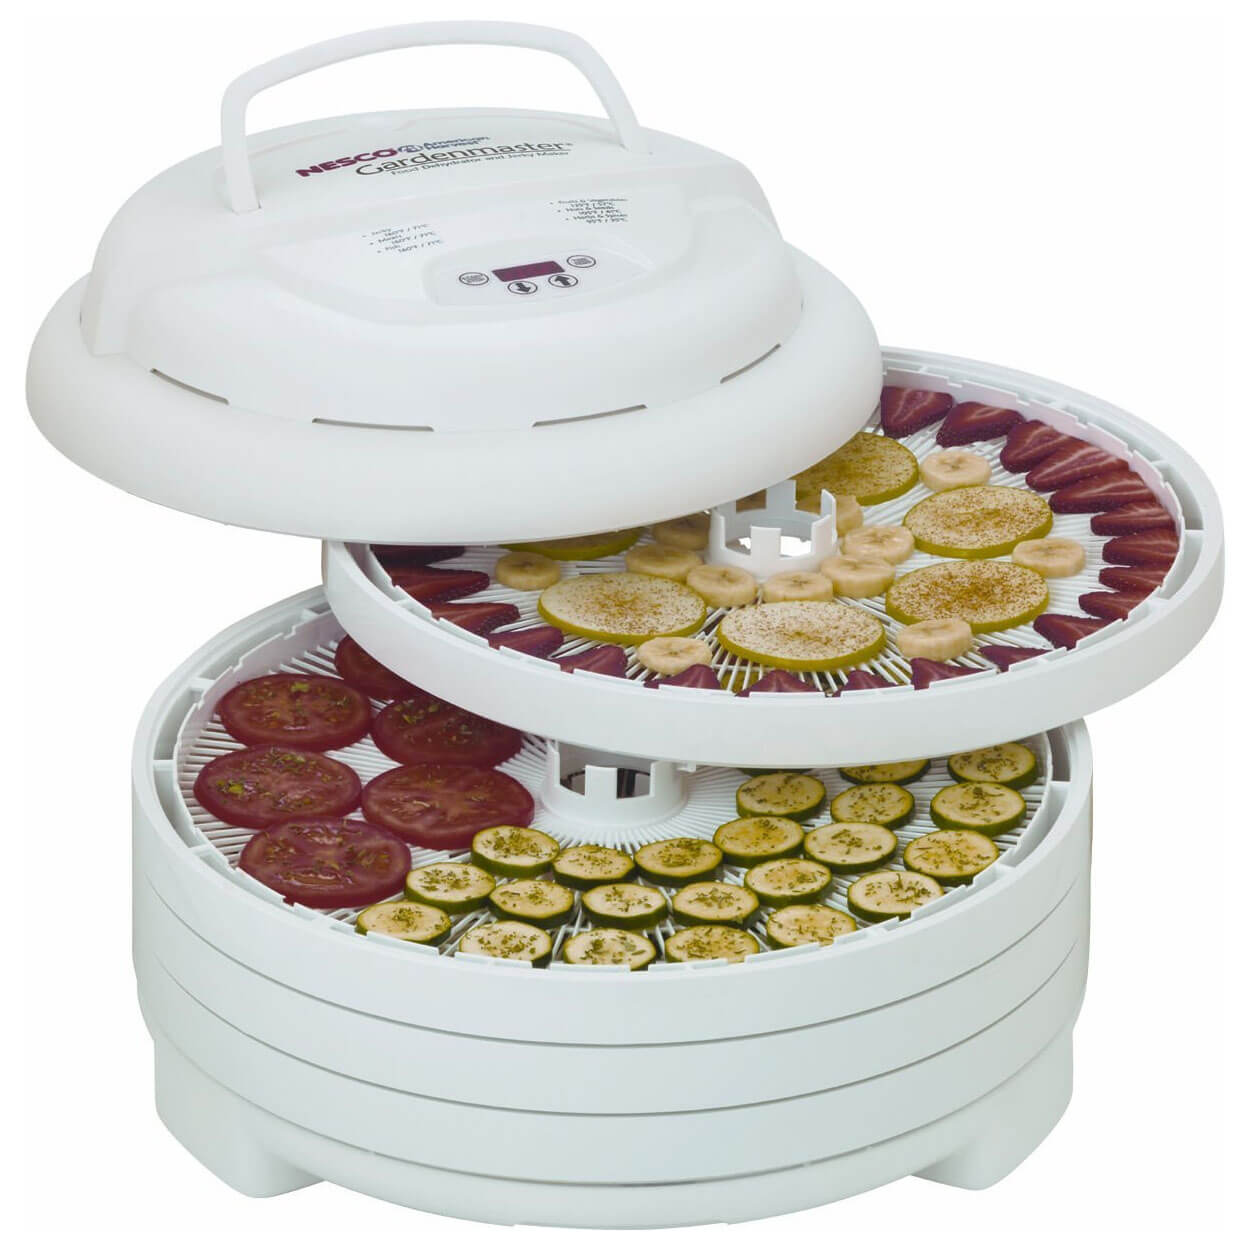 Gardenmaster Digital Pro Food Dehydrator